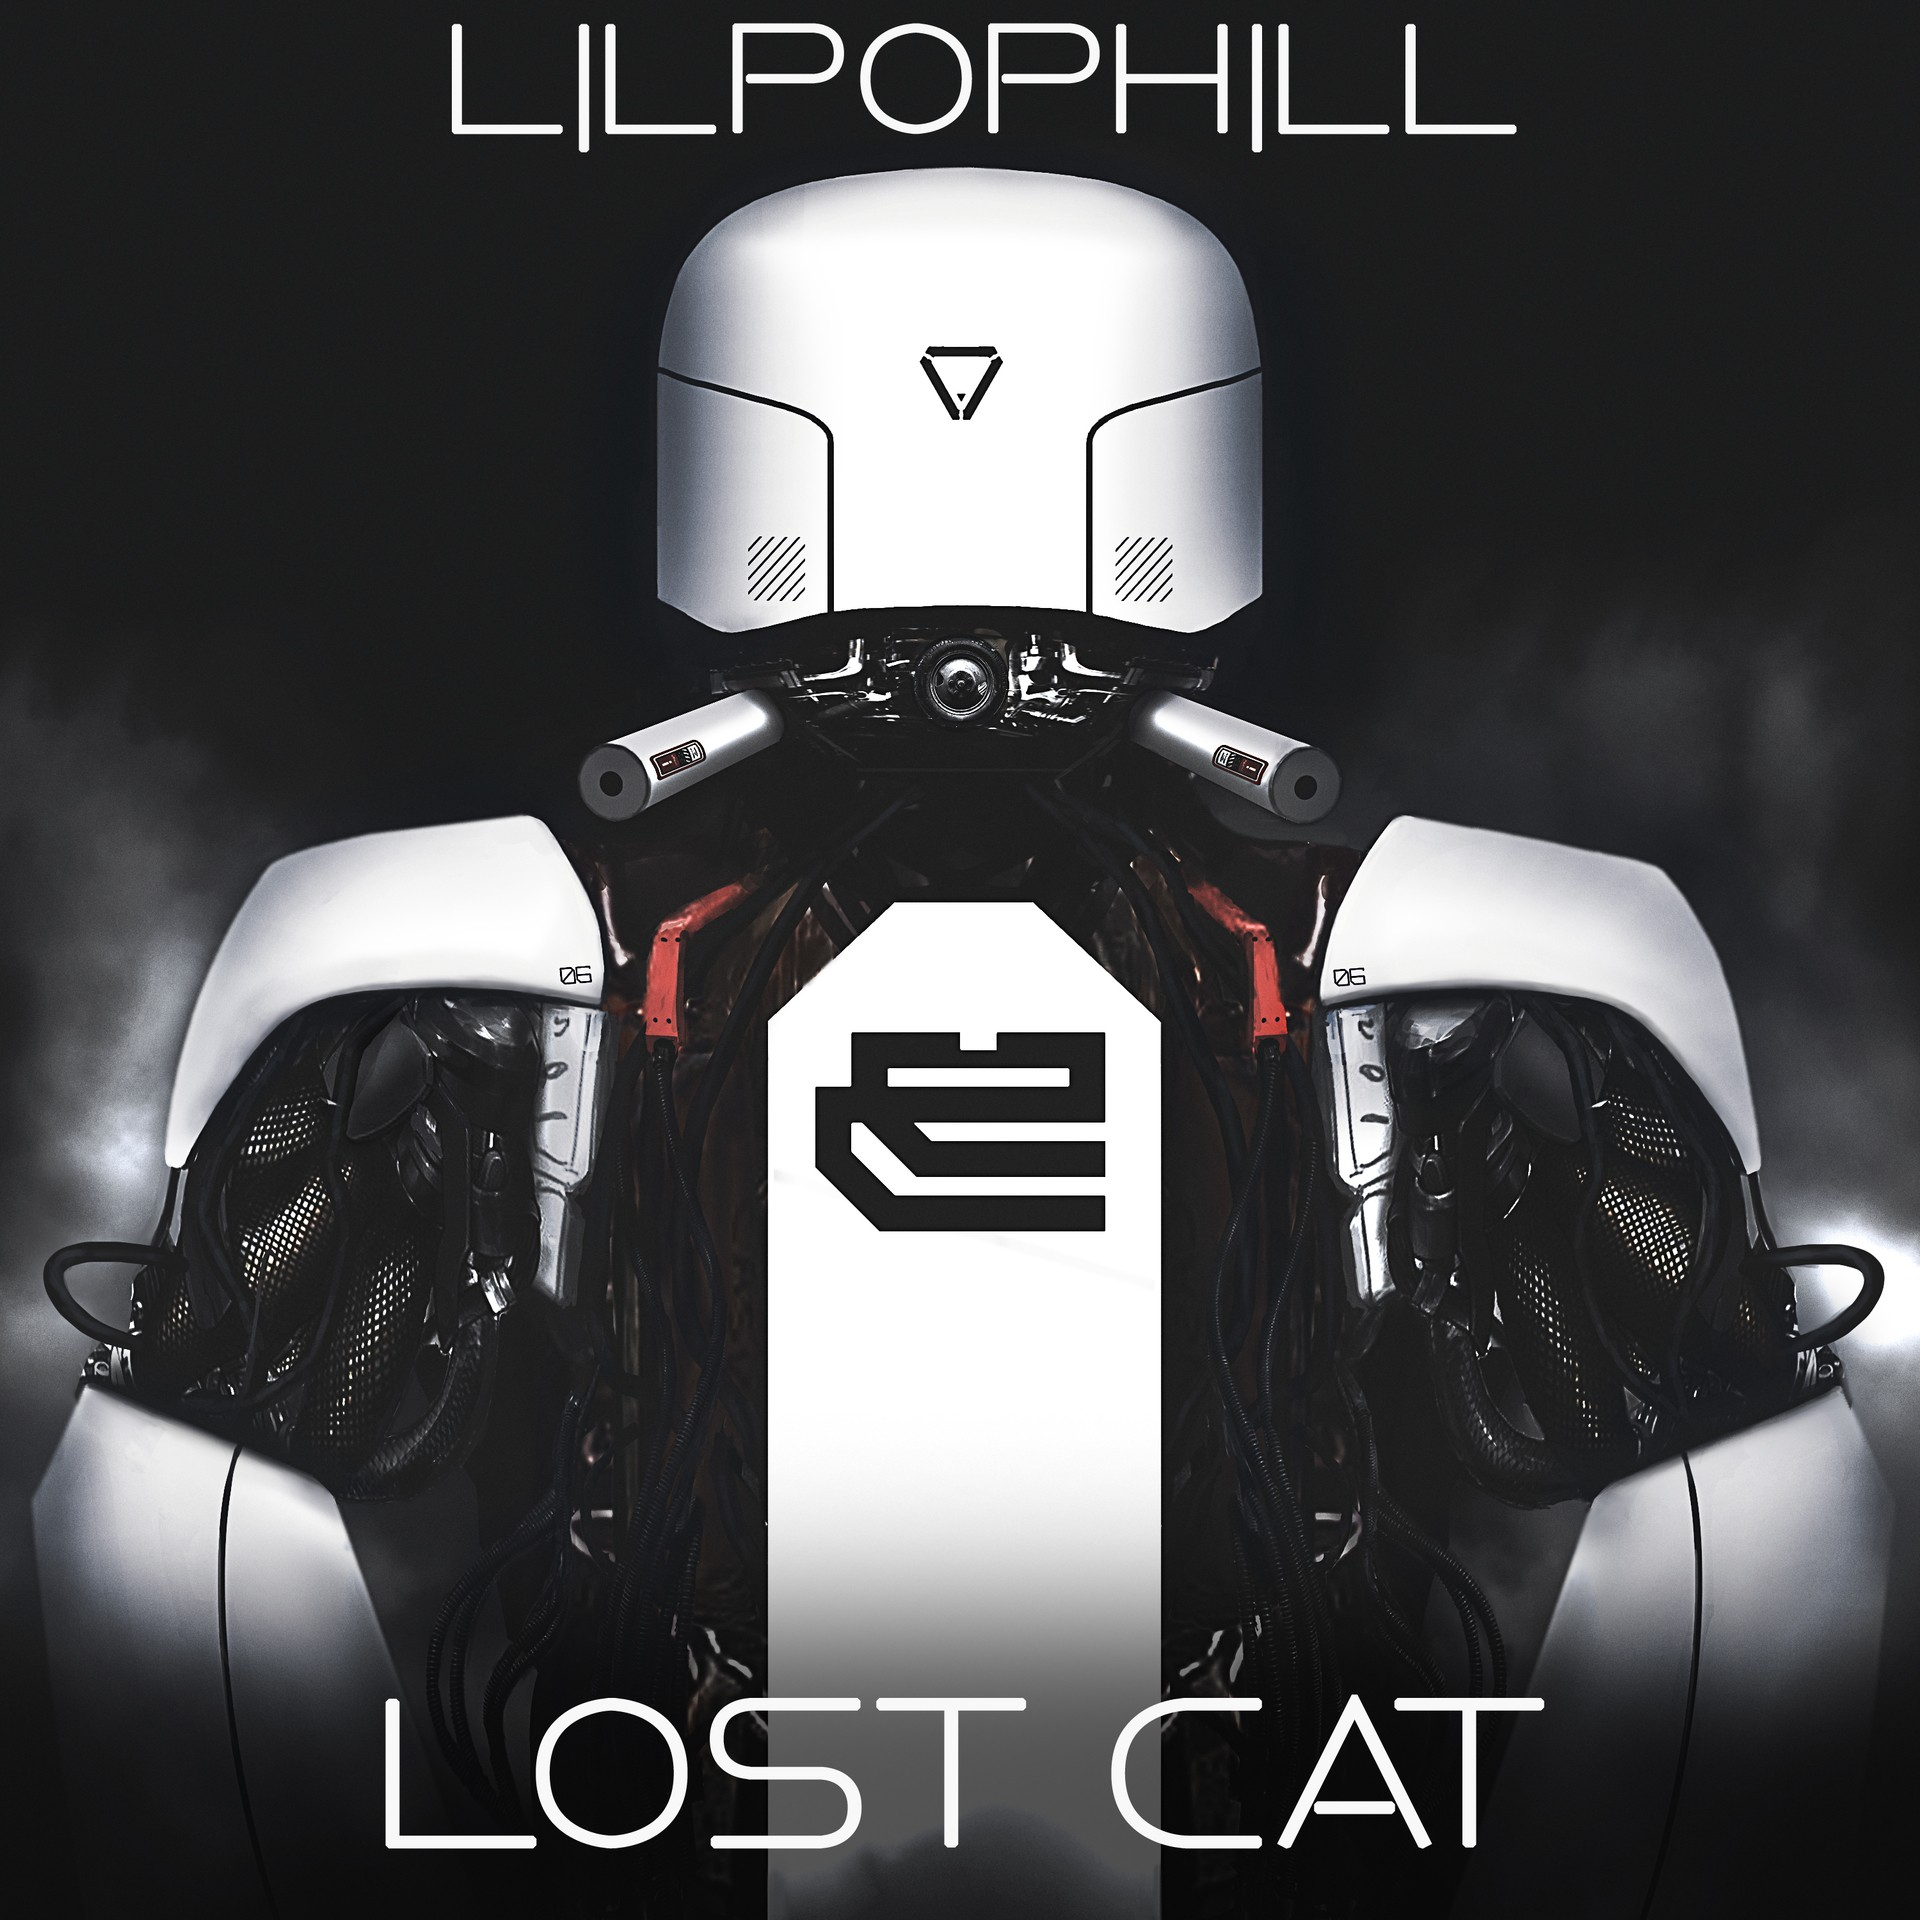 Lost Cat cover1 par AegisFalcon